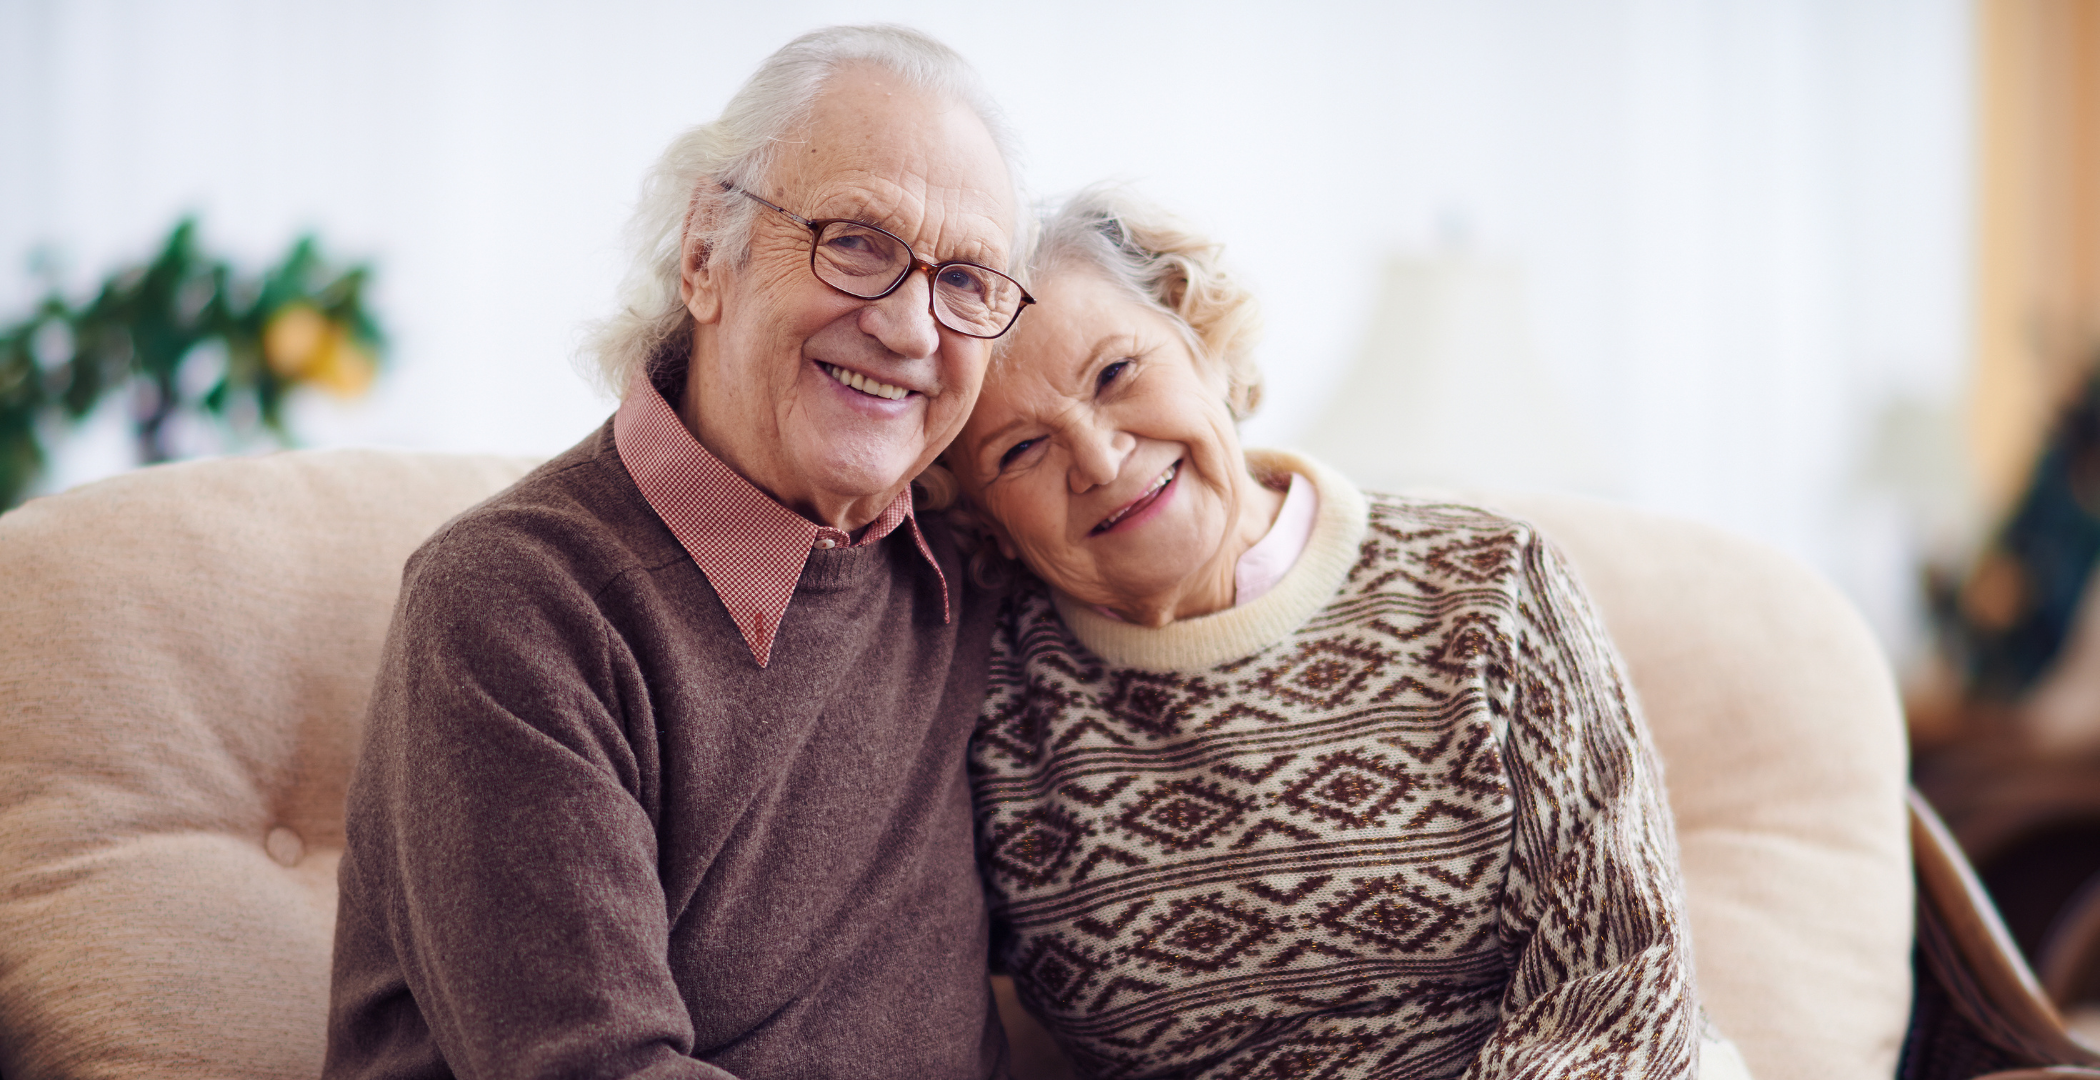 Coping with the symptoms of dementia